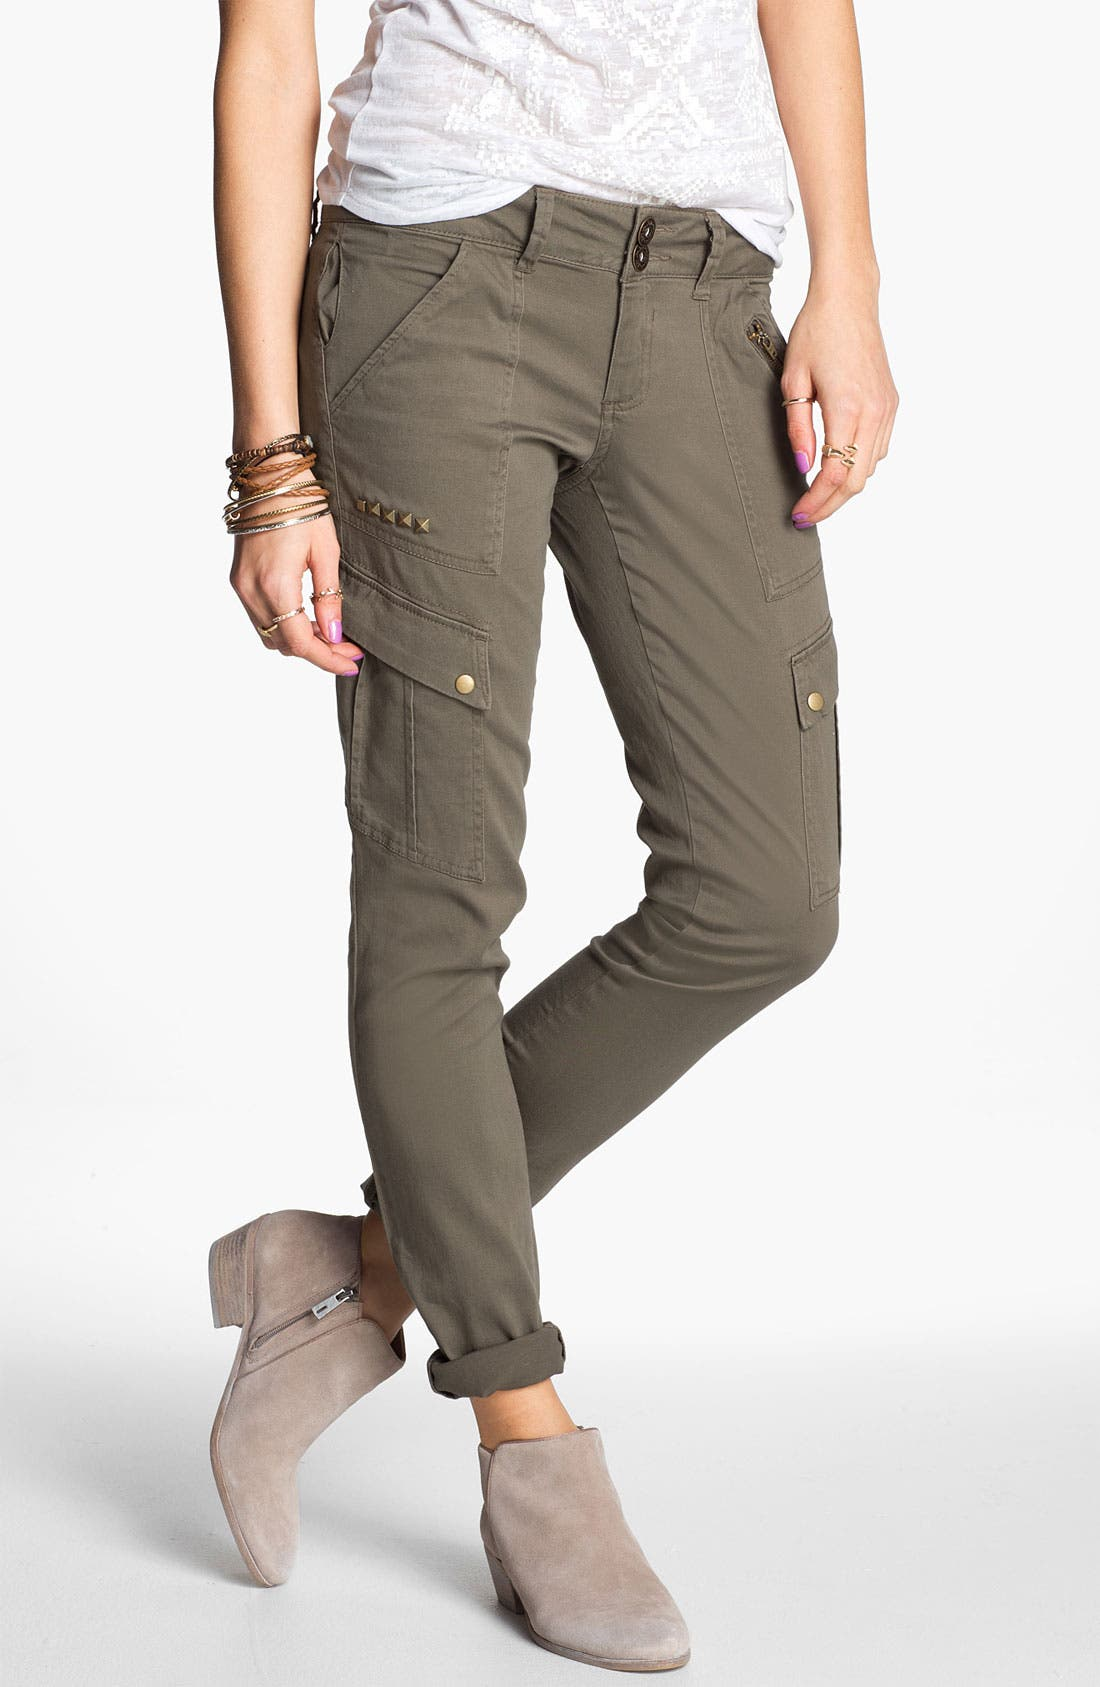 Alternate Image 1 Selected - Jolt Studded Skinny Cargo Pants (Juniors) (Online Only)